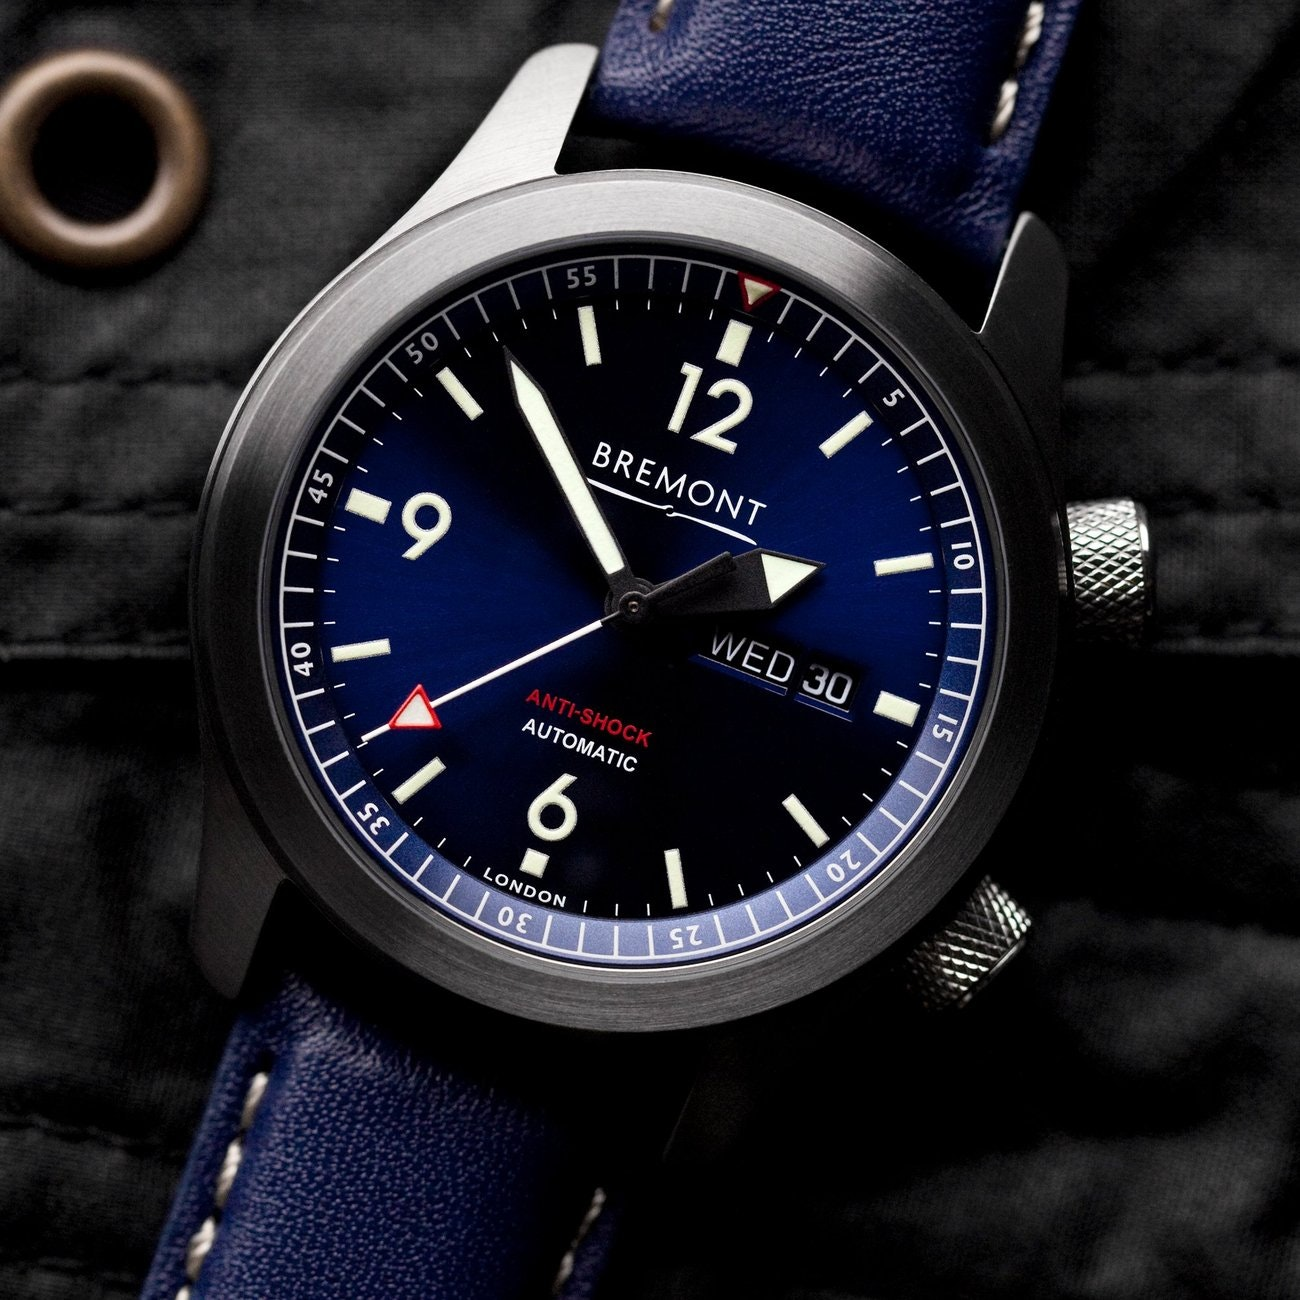 INTRODUCING: The Bremont U-2 Blue is the fresh summer watch Australians (and the world) need right now